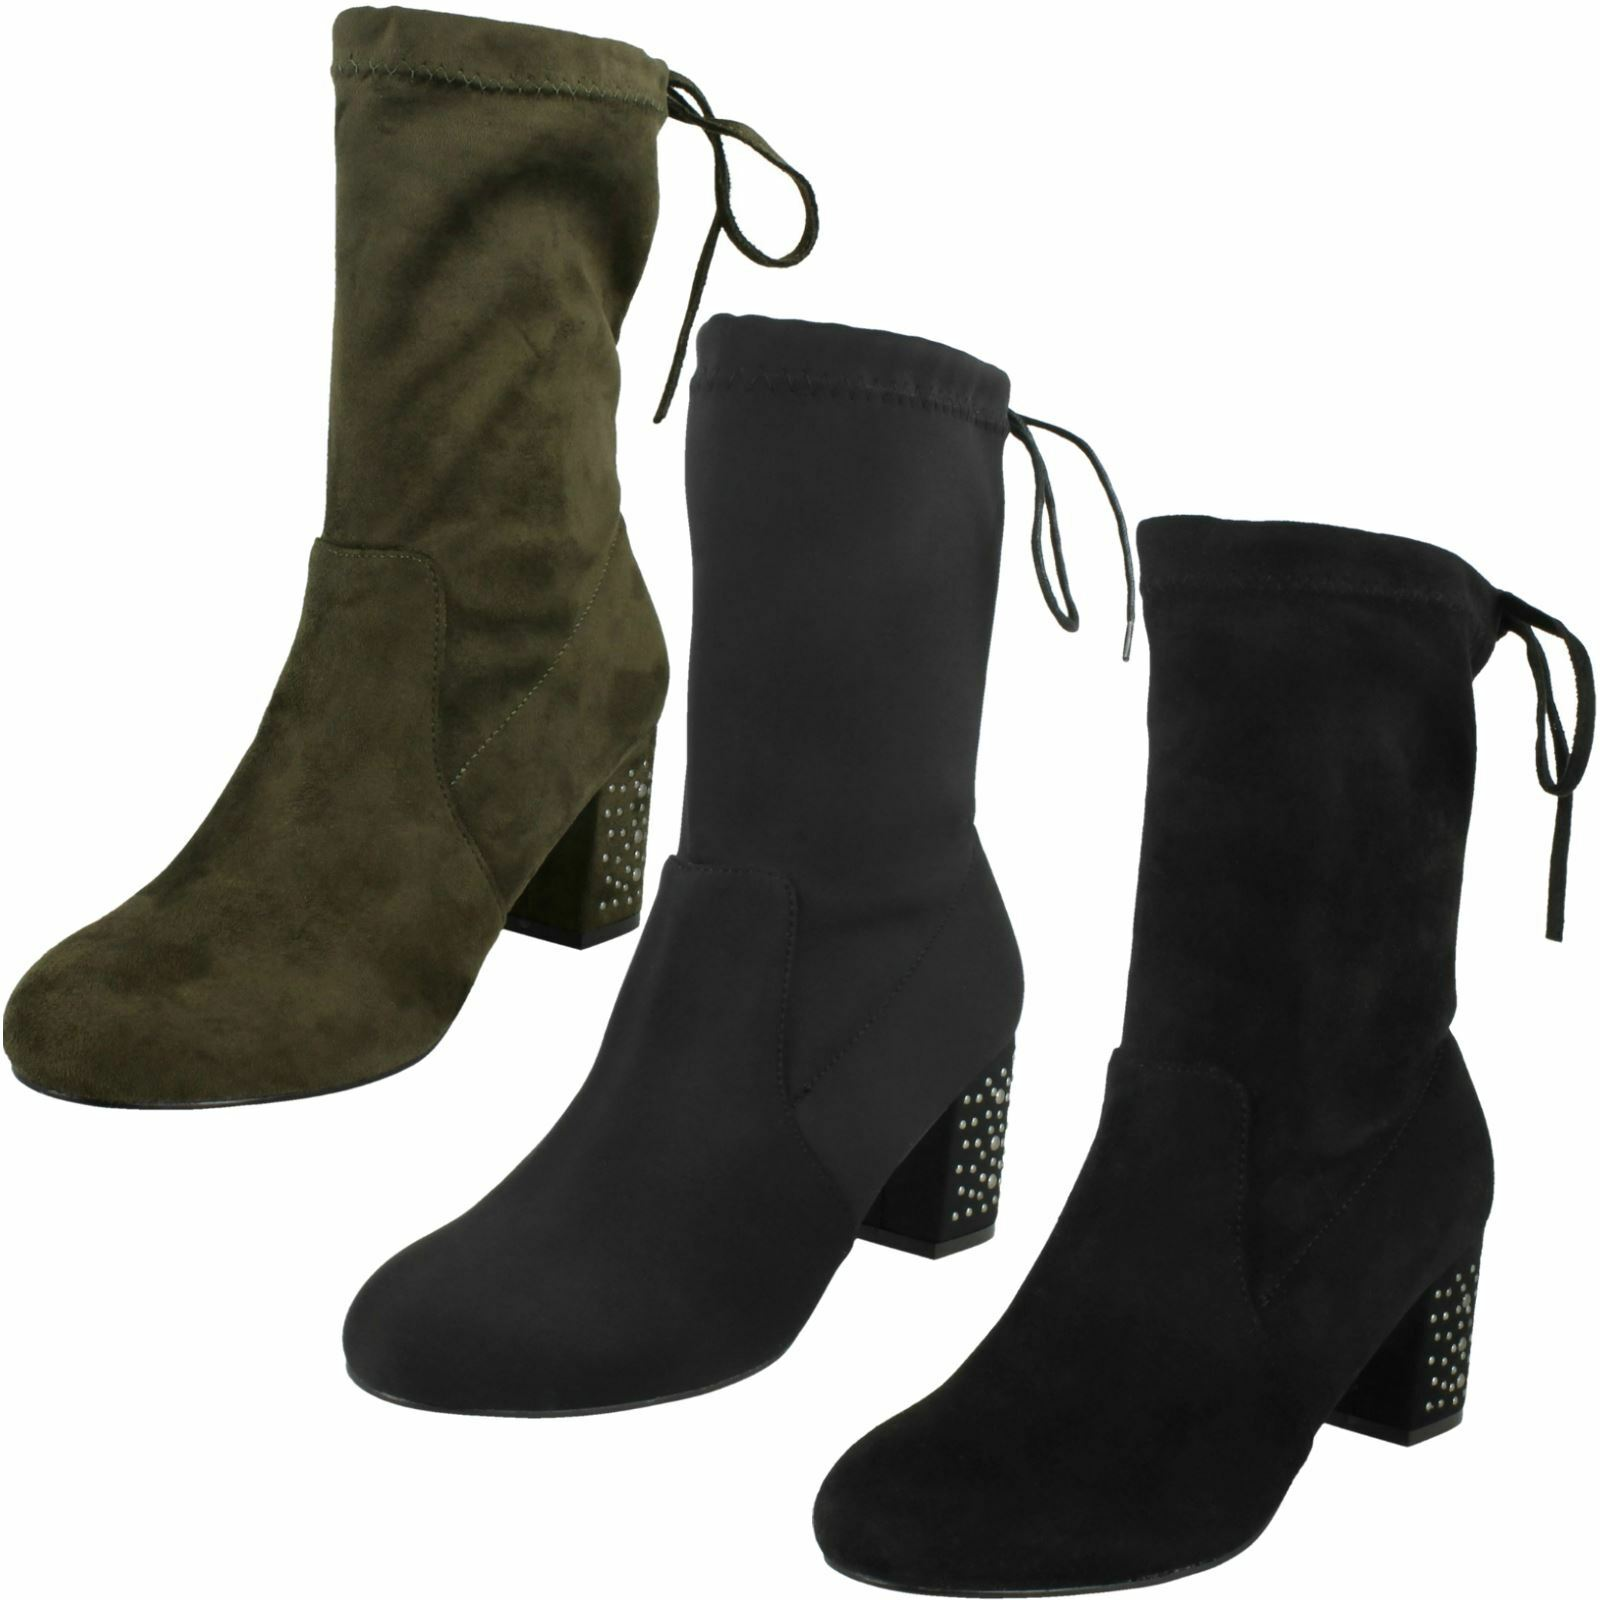 Ladies Spot On Mid Chunky Heel Calf High Boots With Inner Zip Fastening